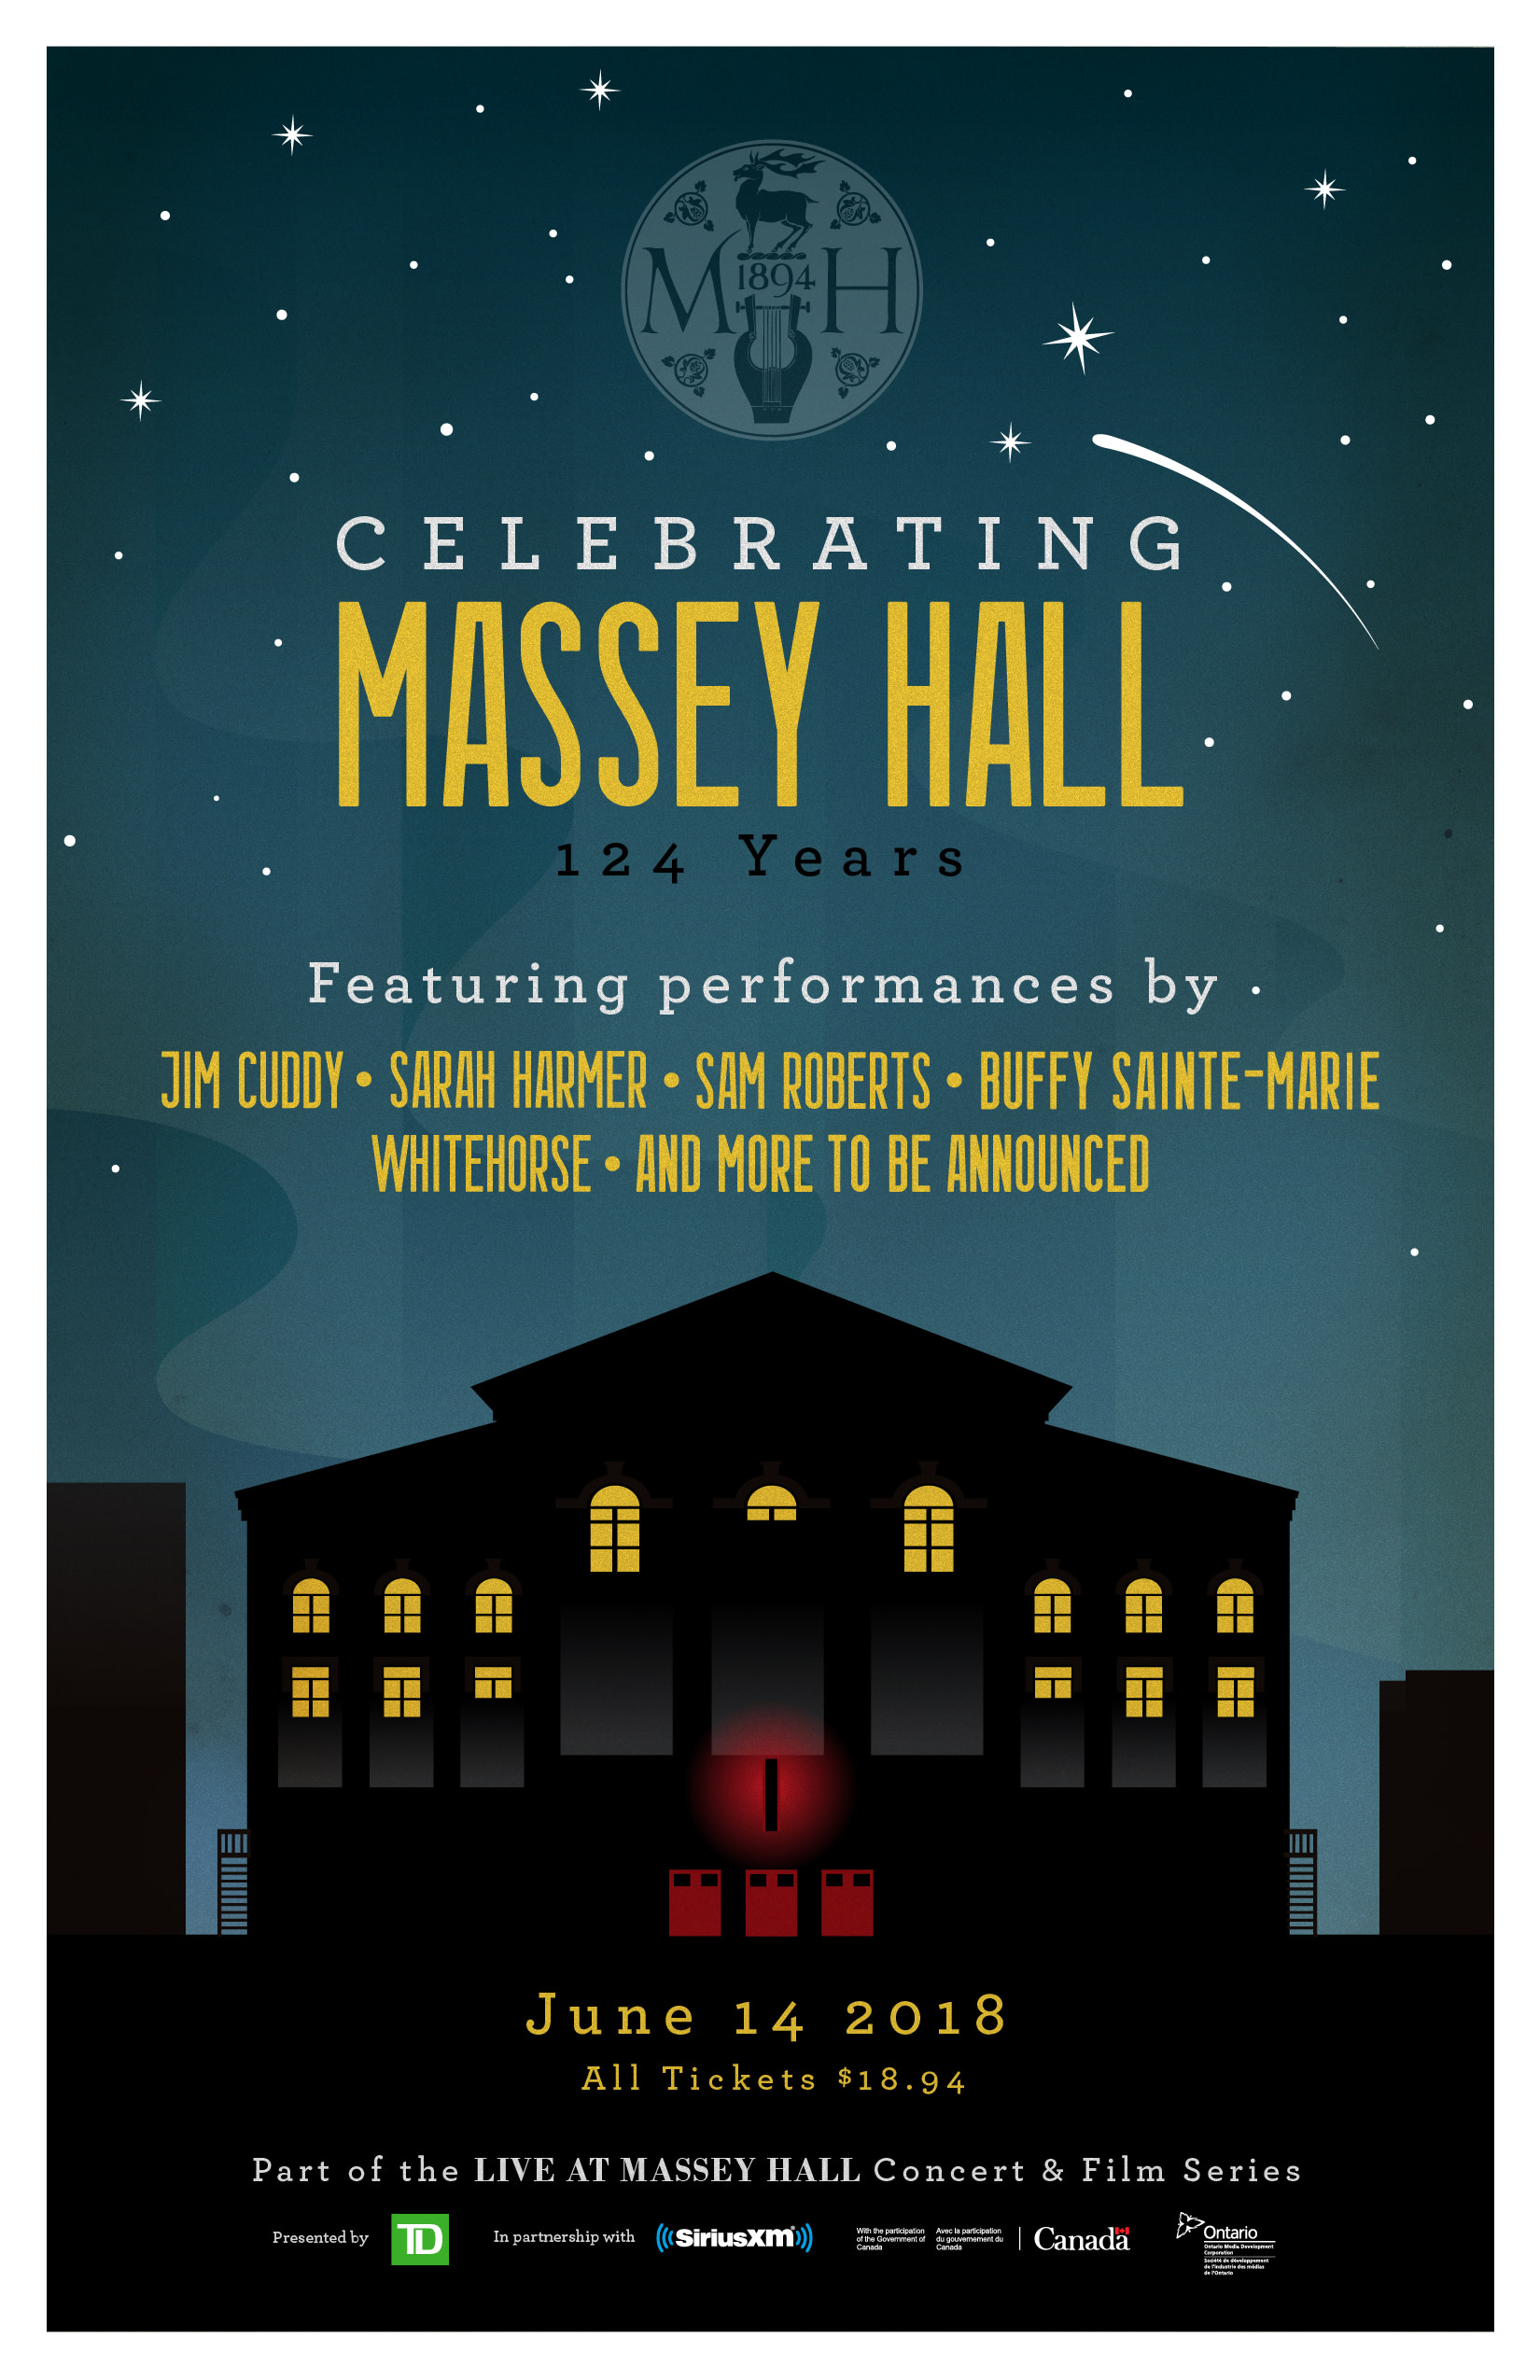 All tickets for this landmark event are priced at $18 94 to honour the year that Massey Hall was ted to the citizens of Toronto